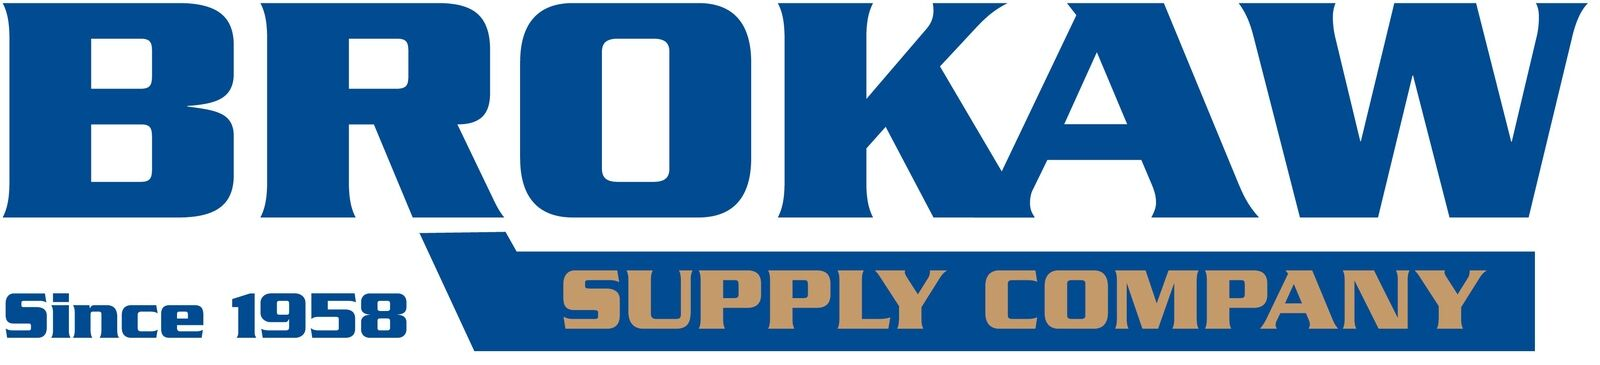 Brokaw Ag Supply